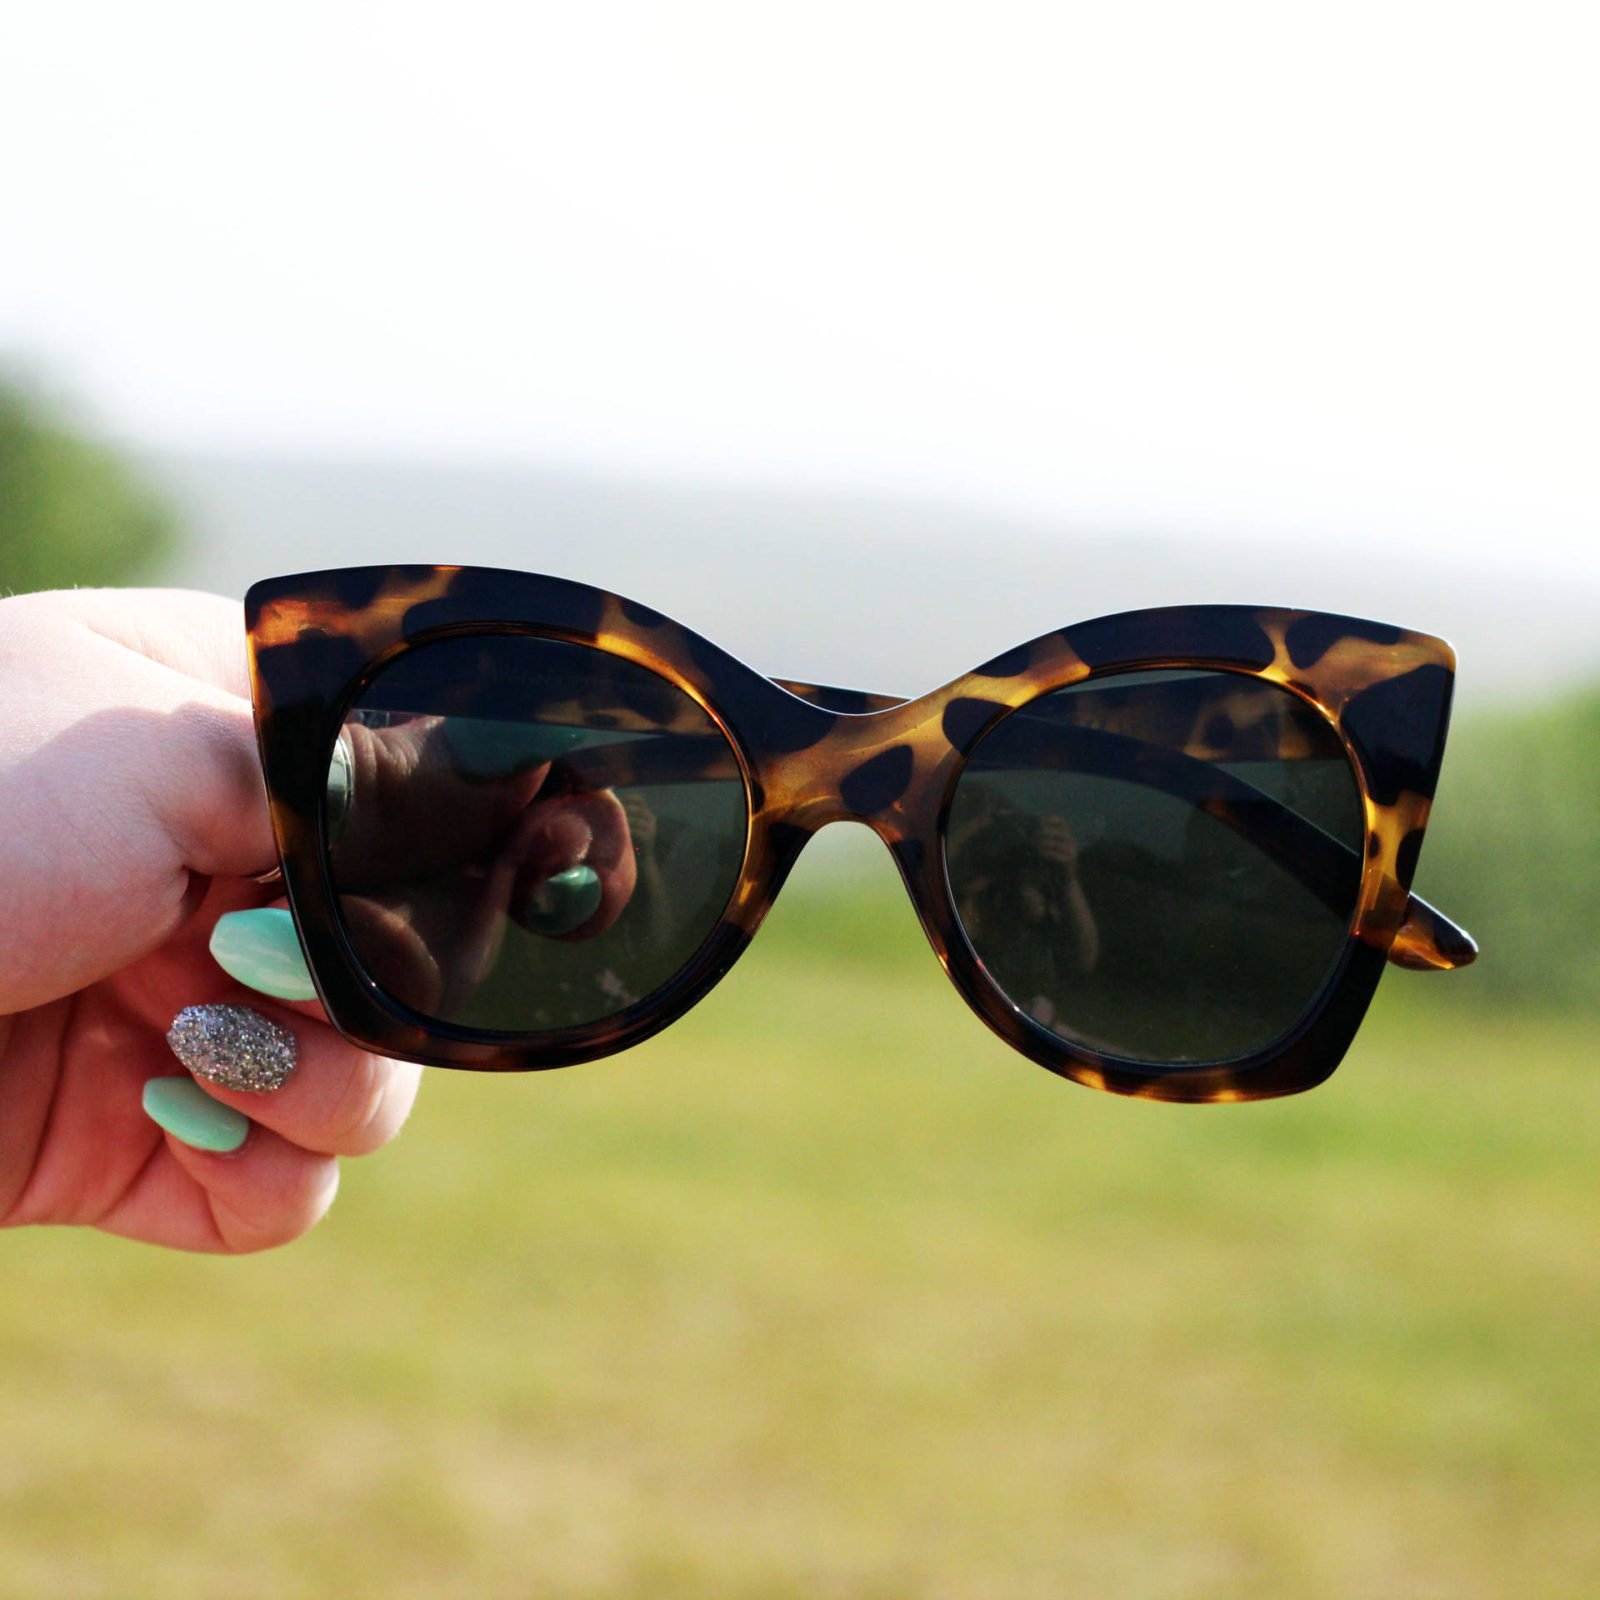 Le Specs Sunglasses Review | Jules B